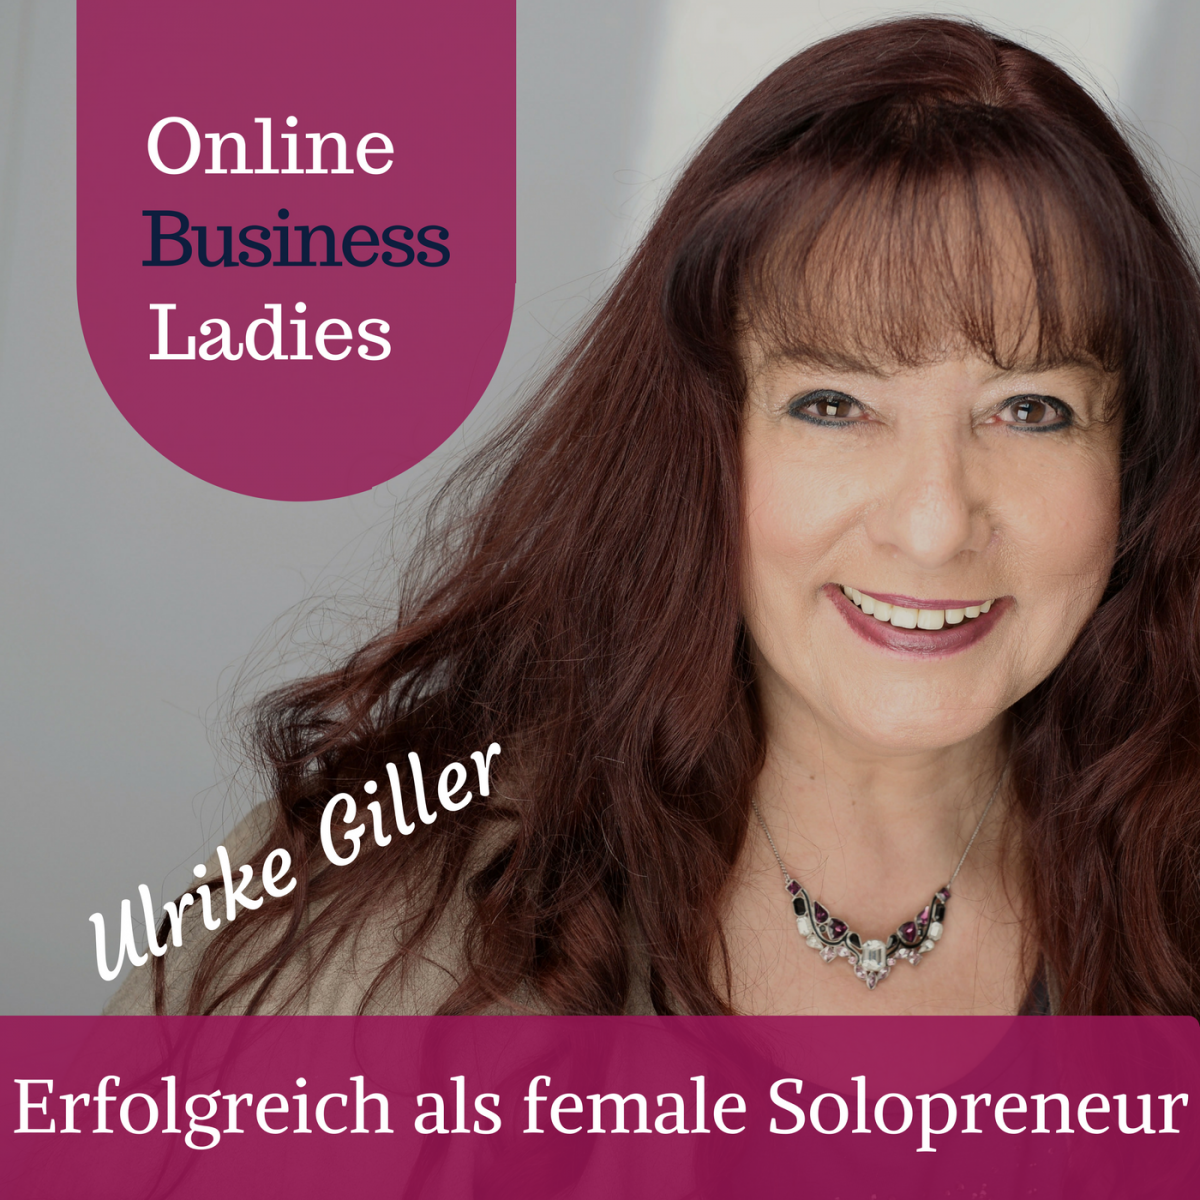 Der OnlineBusinessLadies Podcast by Ulrike Giller